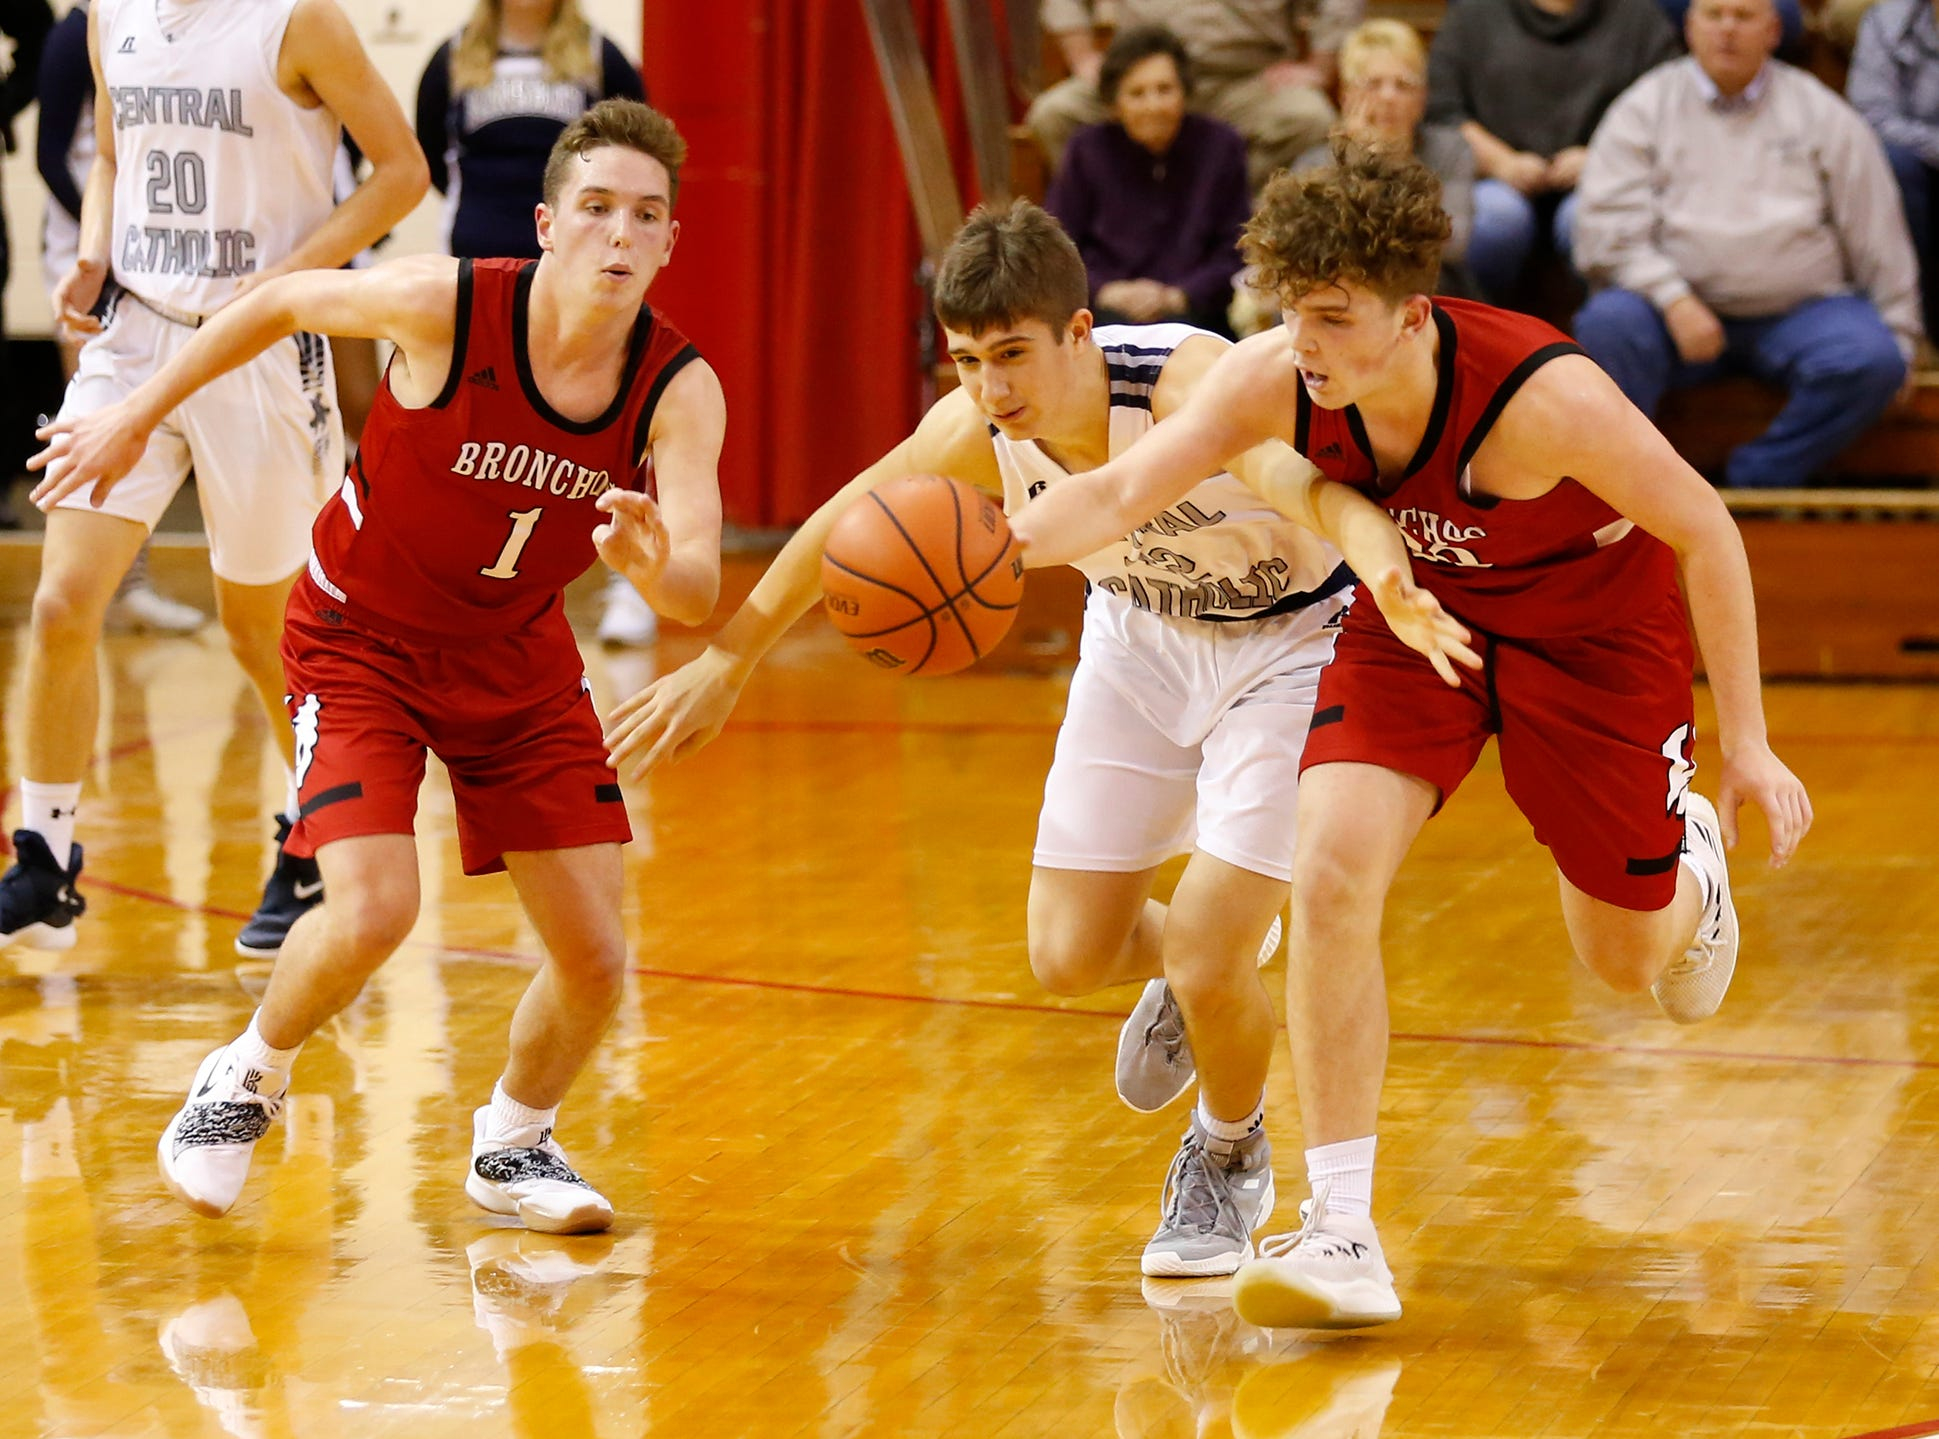 Brothers Avery, left, and Ashton Beaver of Lafayette Jeff combine to steal the ball from Clark Barrett of Central Catholic in the championship of the Franciscan Health Hoops Classic Saturday, December 1, 2018, at Lafayette Jeff. Jeff defeated Central Catholic 76-73 for the title.